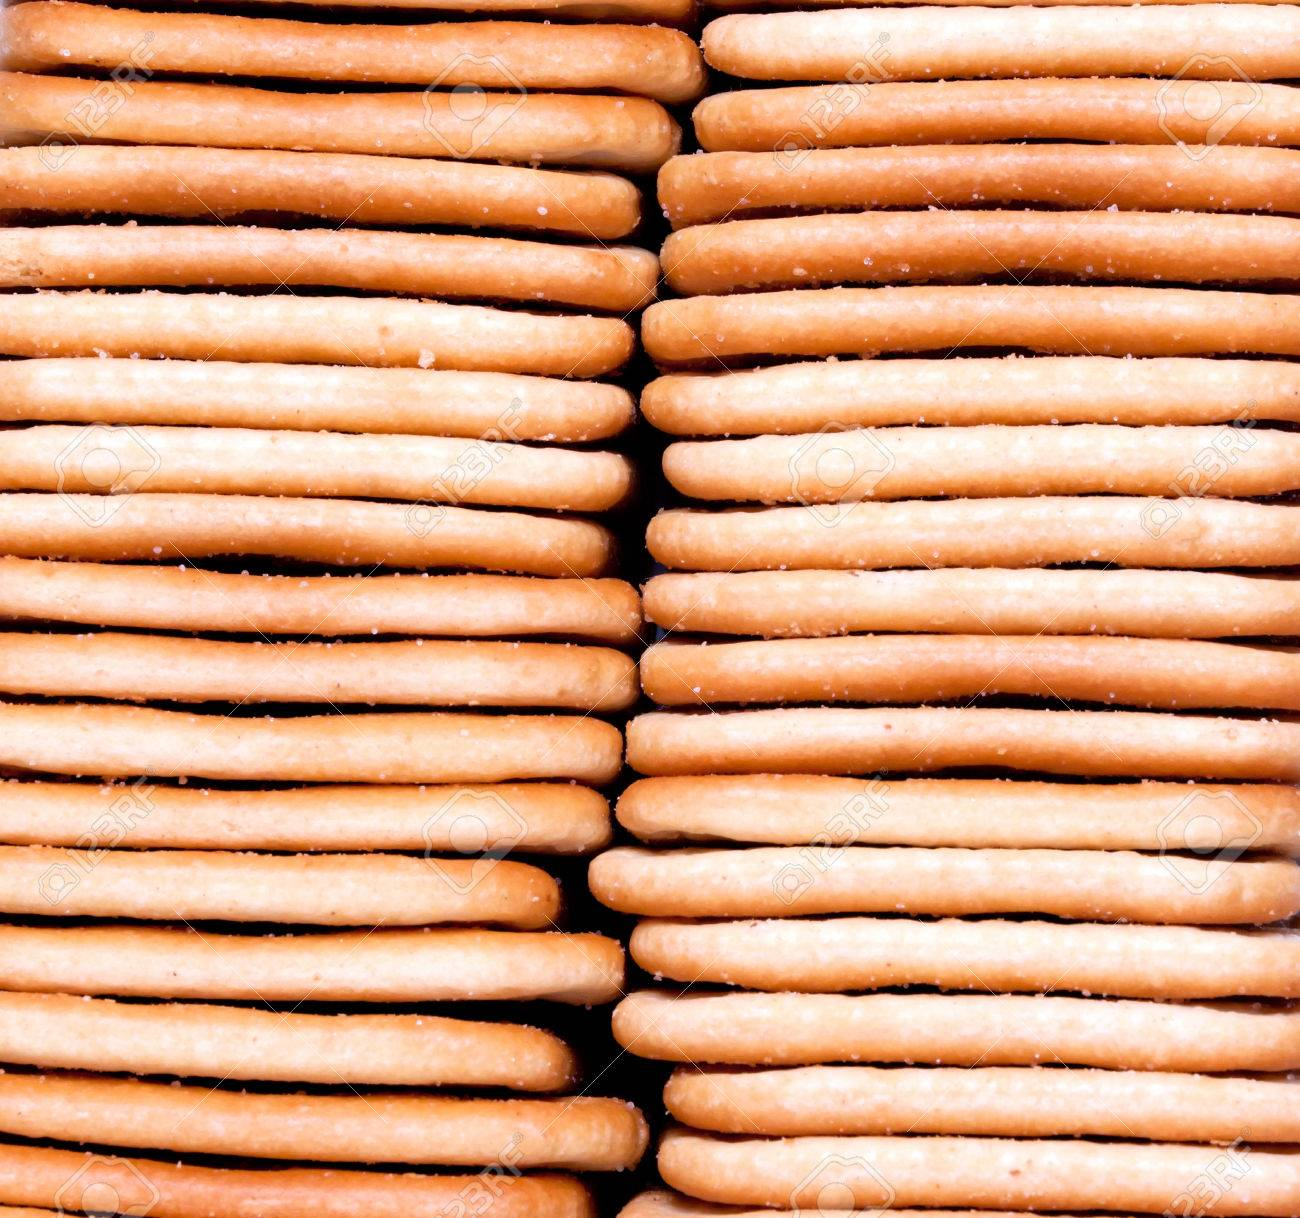 fresh homemade cookies stacked. close up. background - 27009029